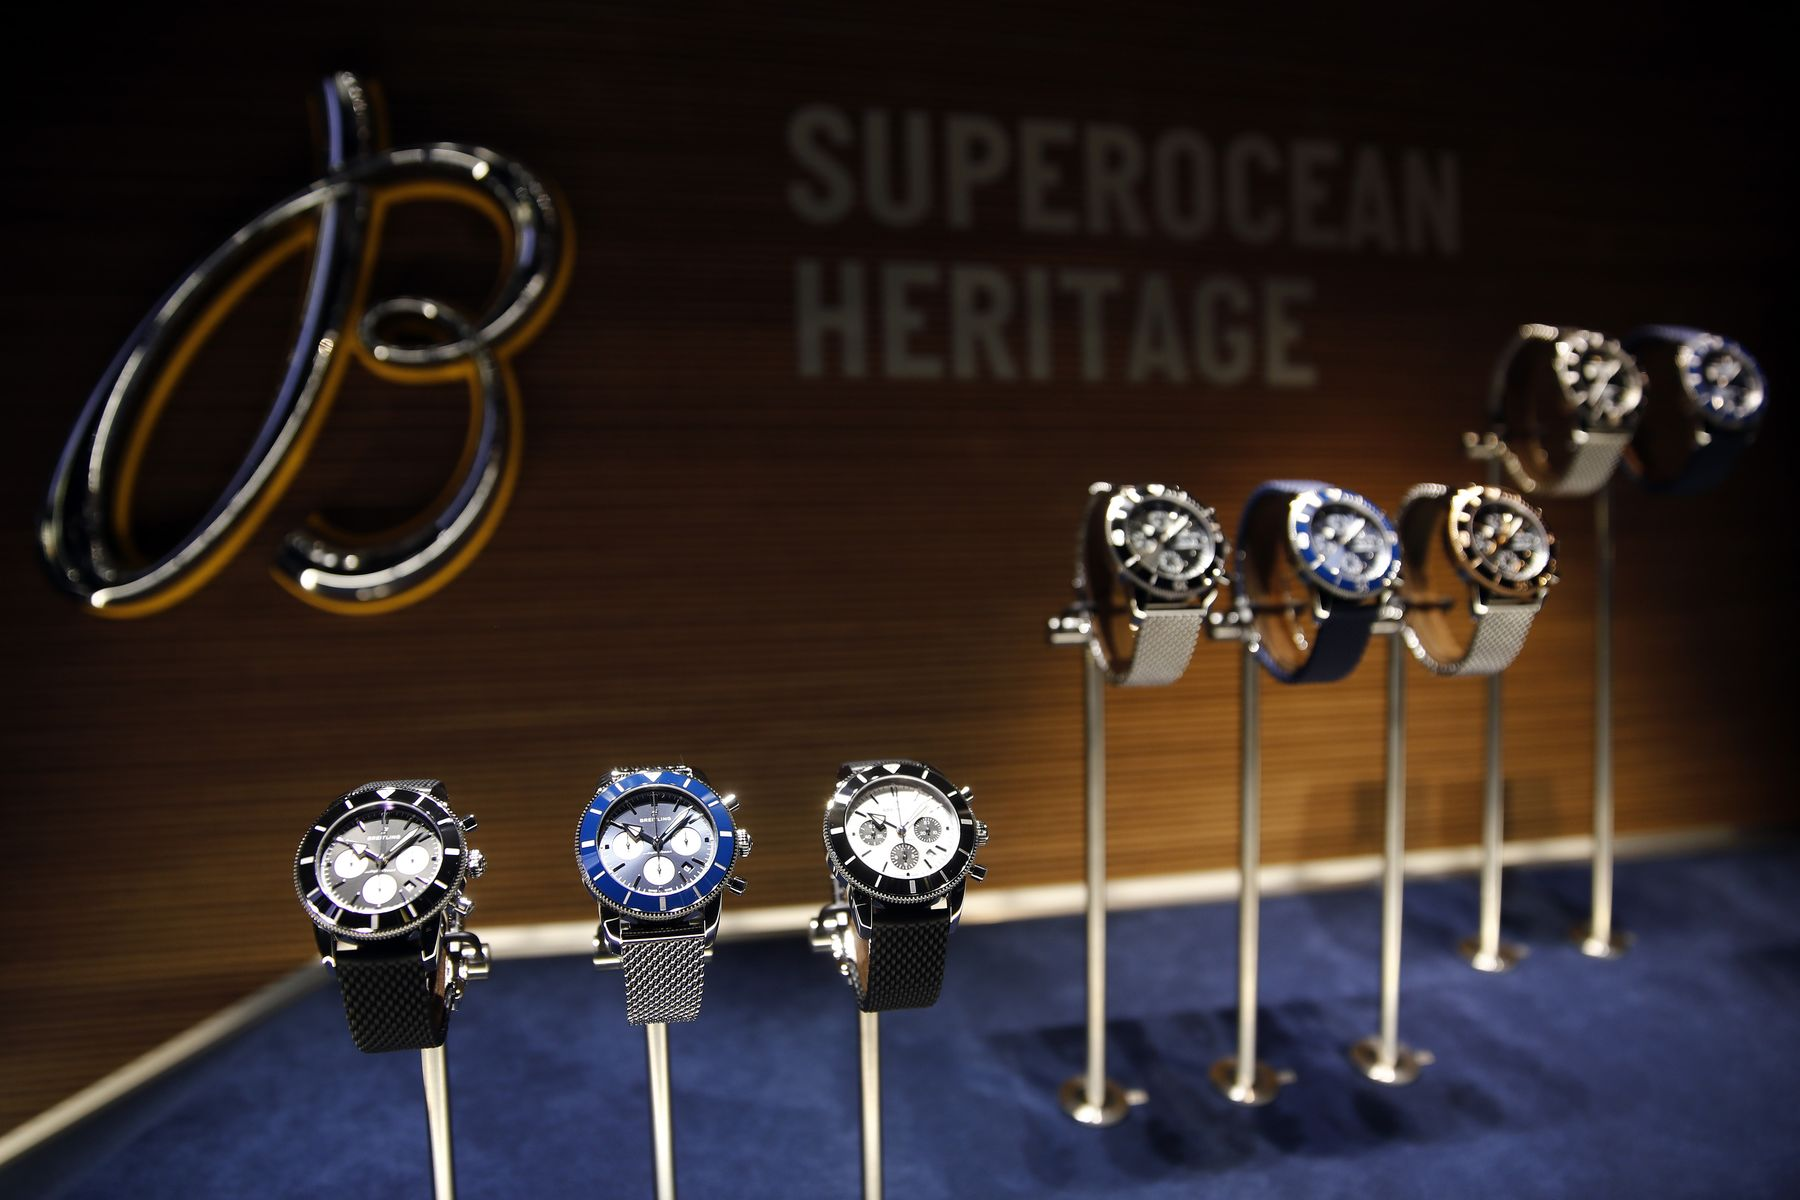 Wristwatches, produced by Breitling AG, stand on display during day two of the 2018 Baselword.